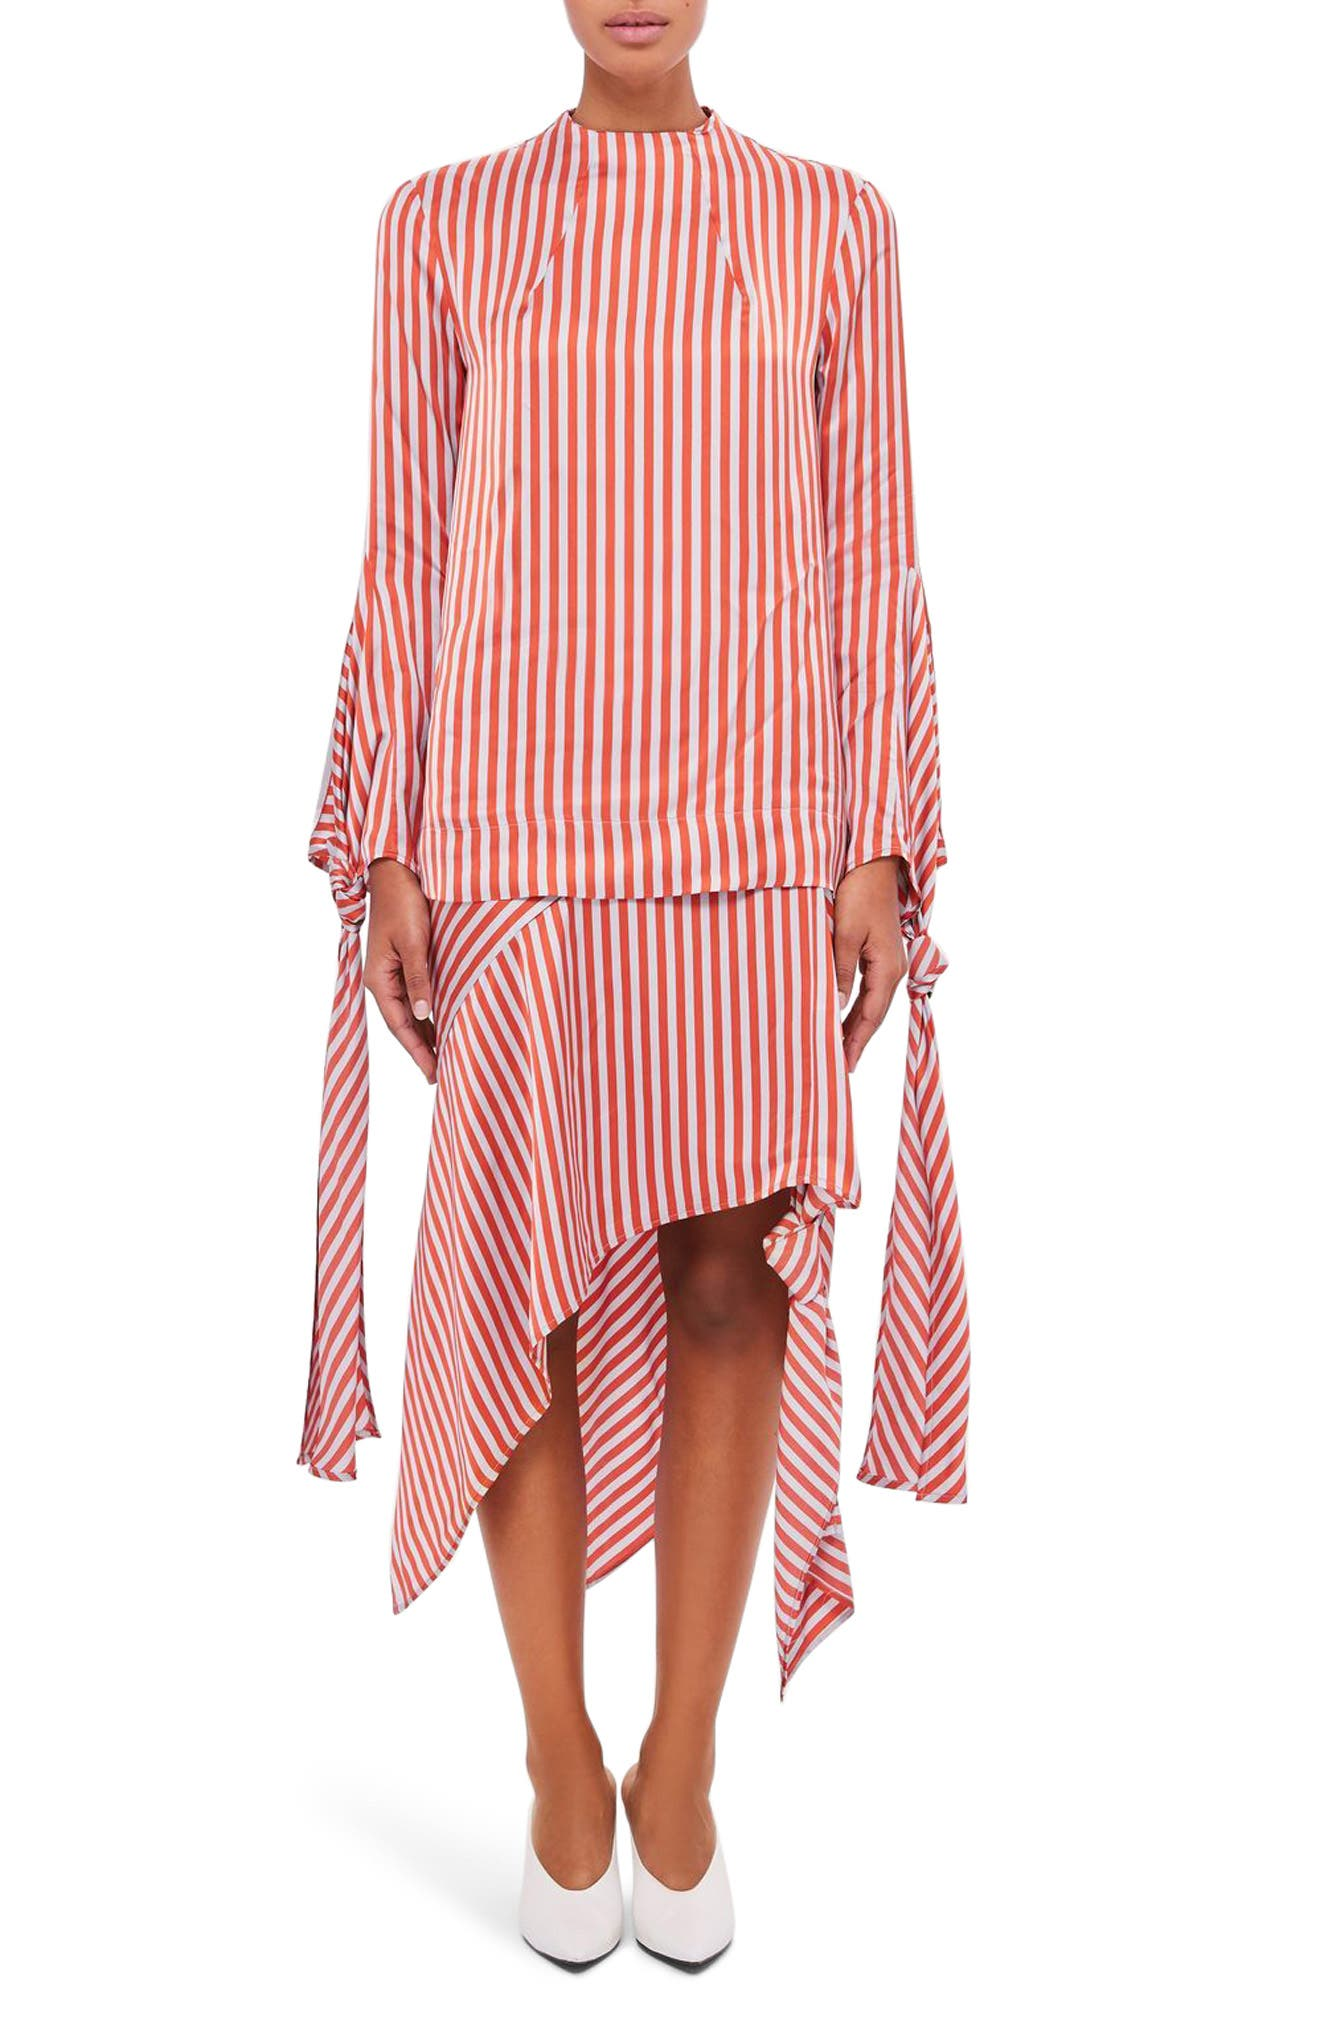 Topshop Boutique Stripe Knot Sleeve Blouse